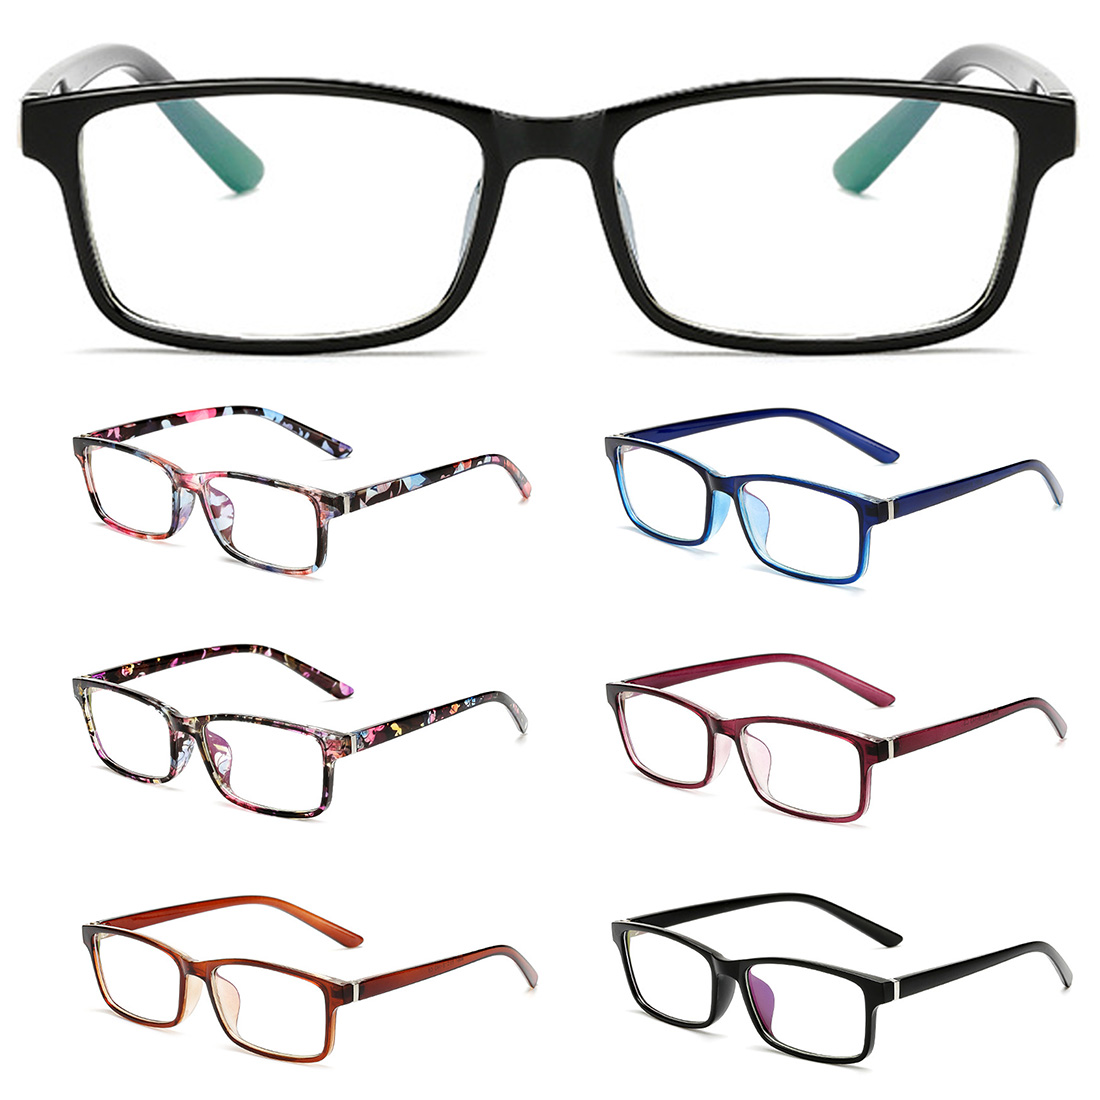 Vintage Floral Eye Glasses Frames For Women Flower Transparent Fake Gasses Square Optical Eyeglasses Nerd Eyewear Spectacle